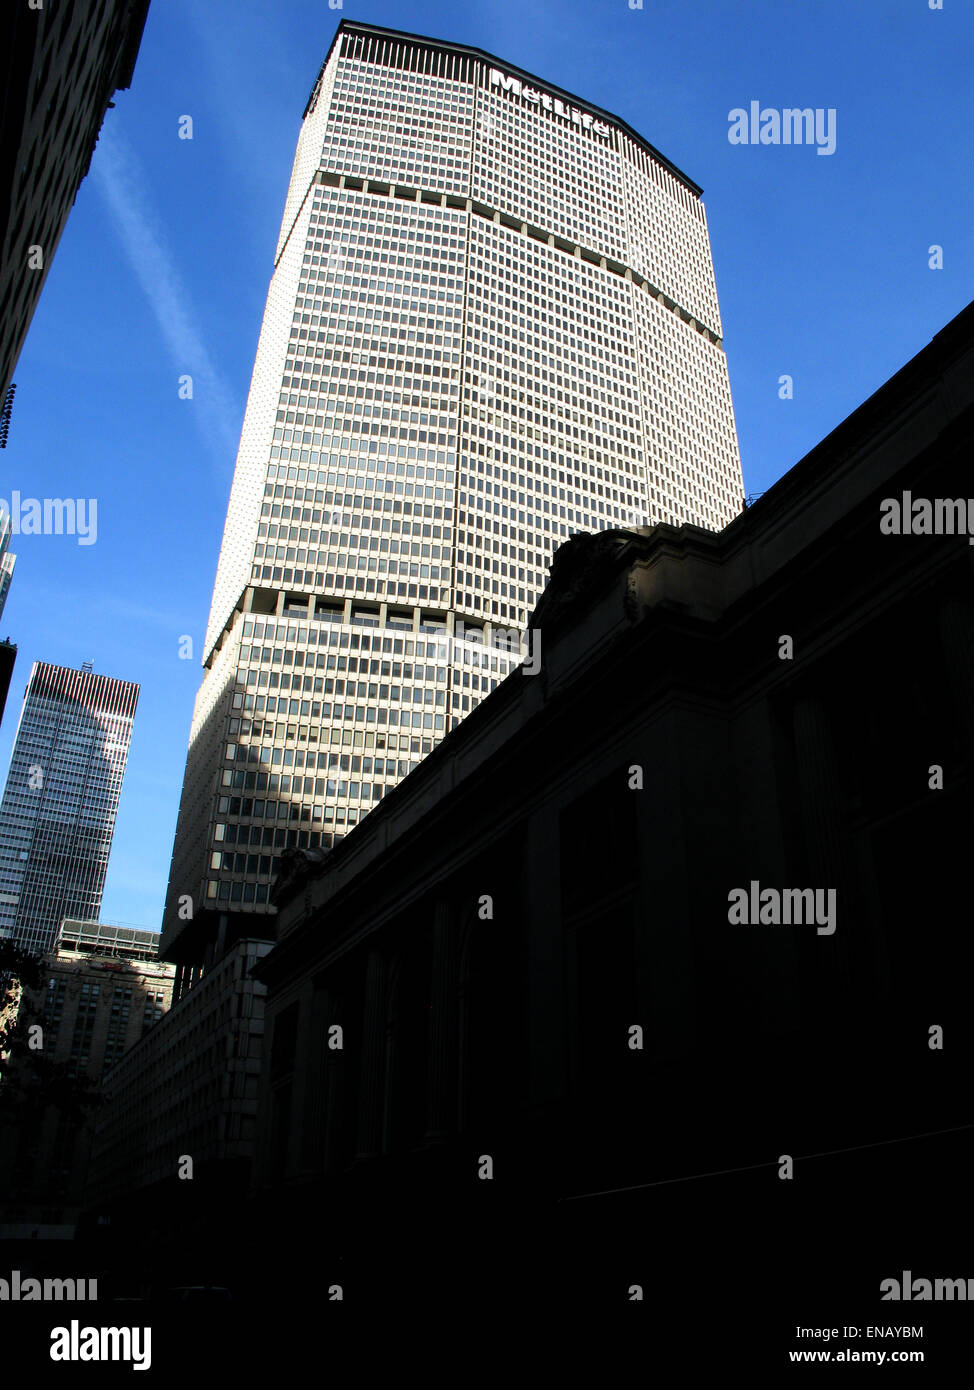 Formerly Pan Am Building High Resolution Stock Photography and ...